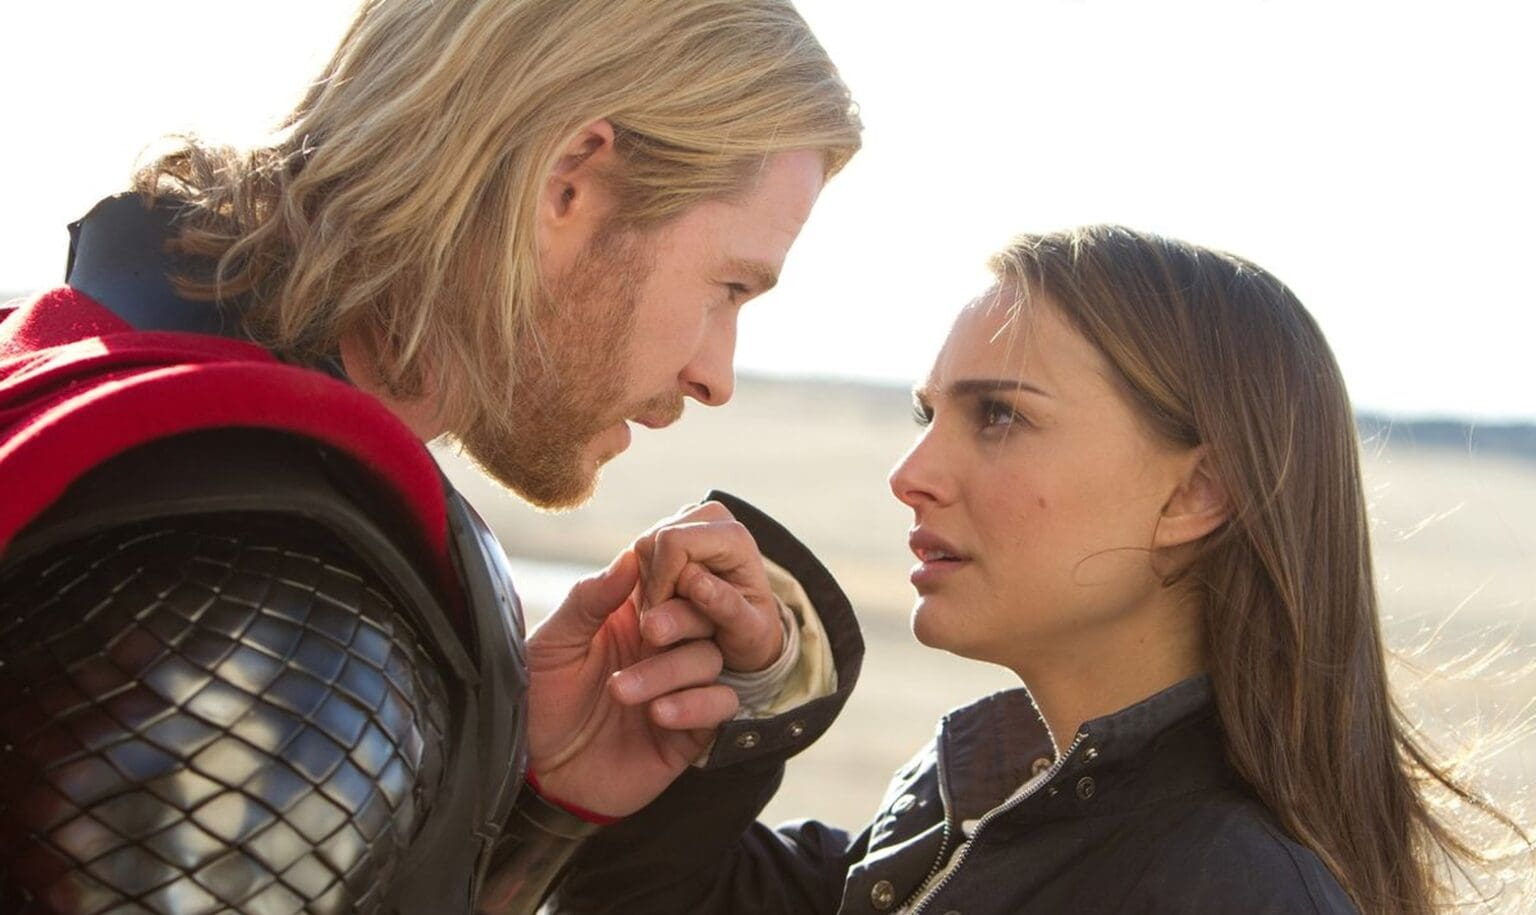 Natalie Portman and Apple are working together like Thor and Jane Foster.